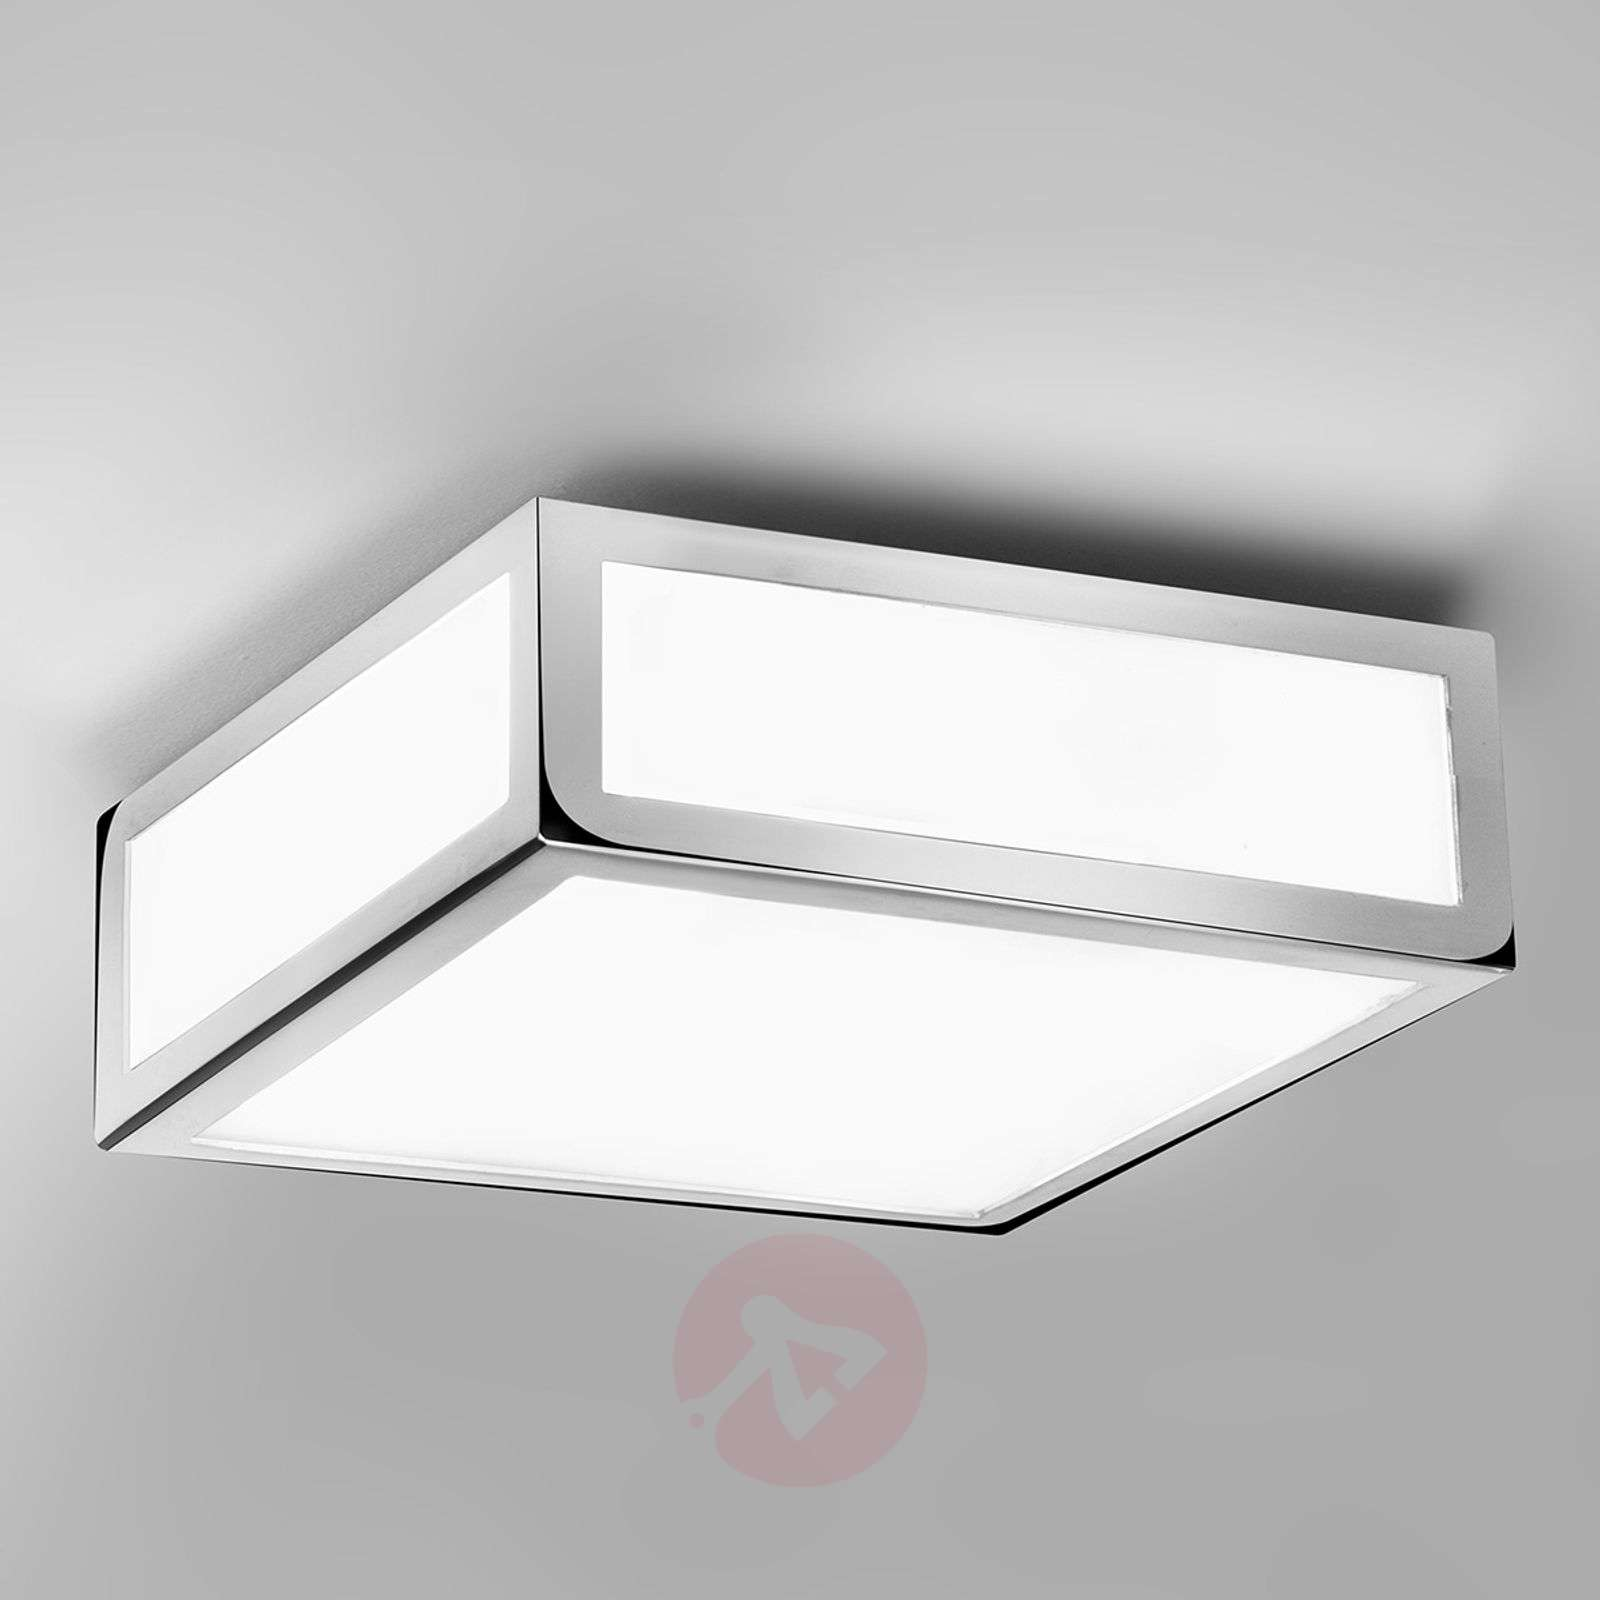 Mashiko Ceiling Light Simple 20 x 20 cm-1020302-02